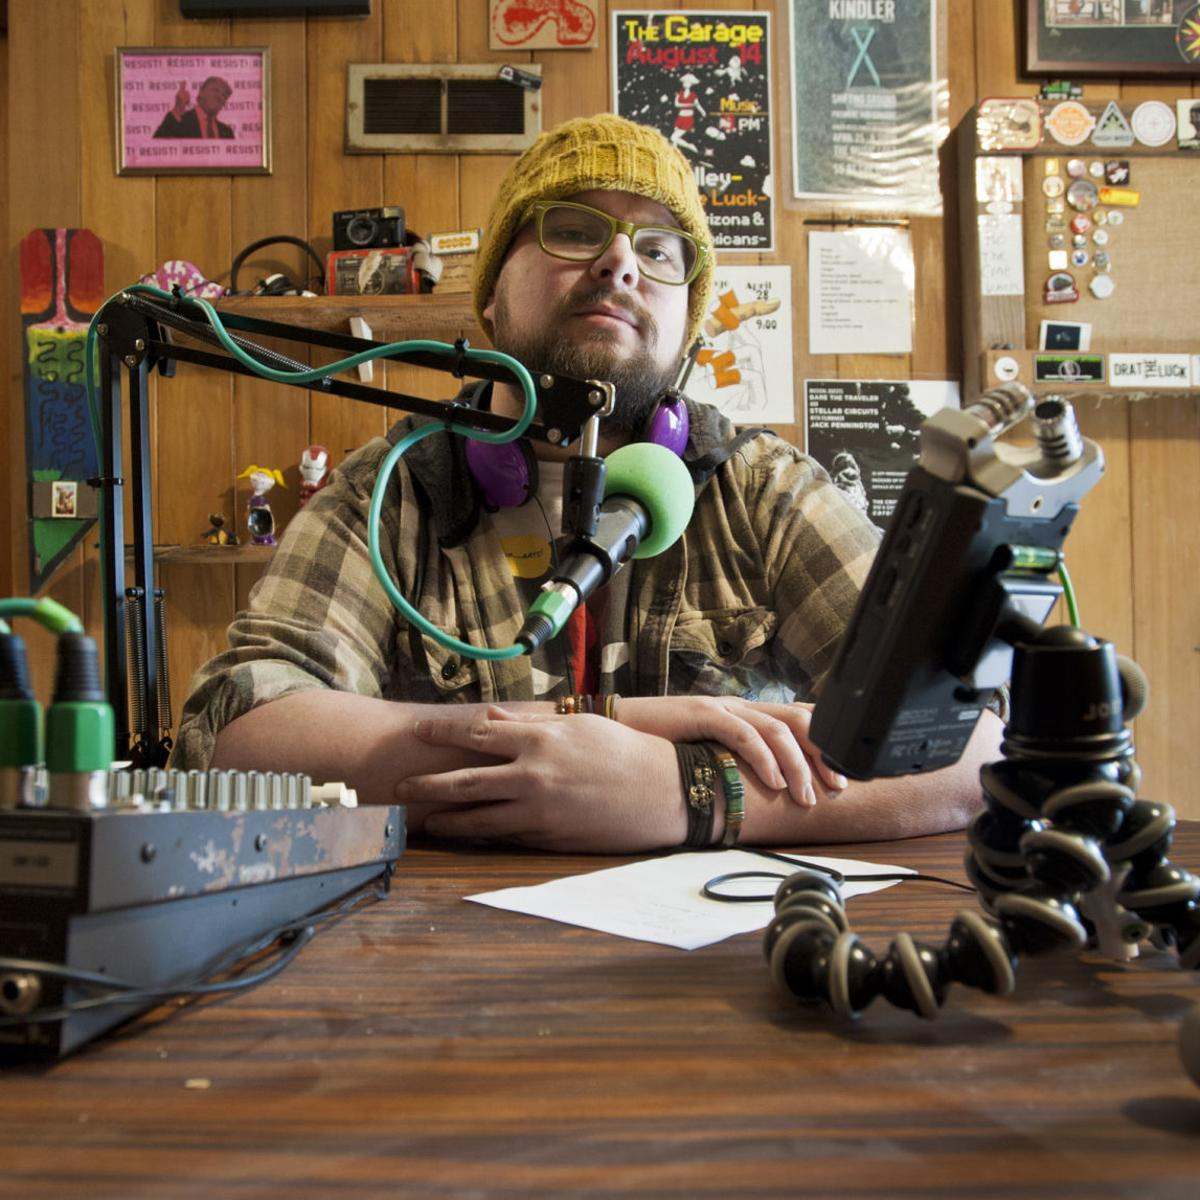 Forsyth County filmmaker launches podcast, hoping shared stories can